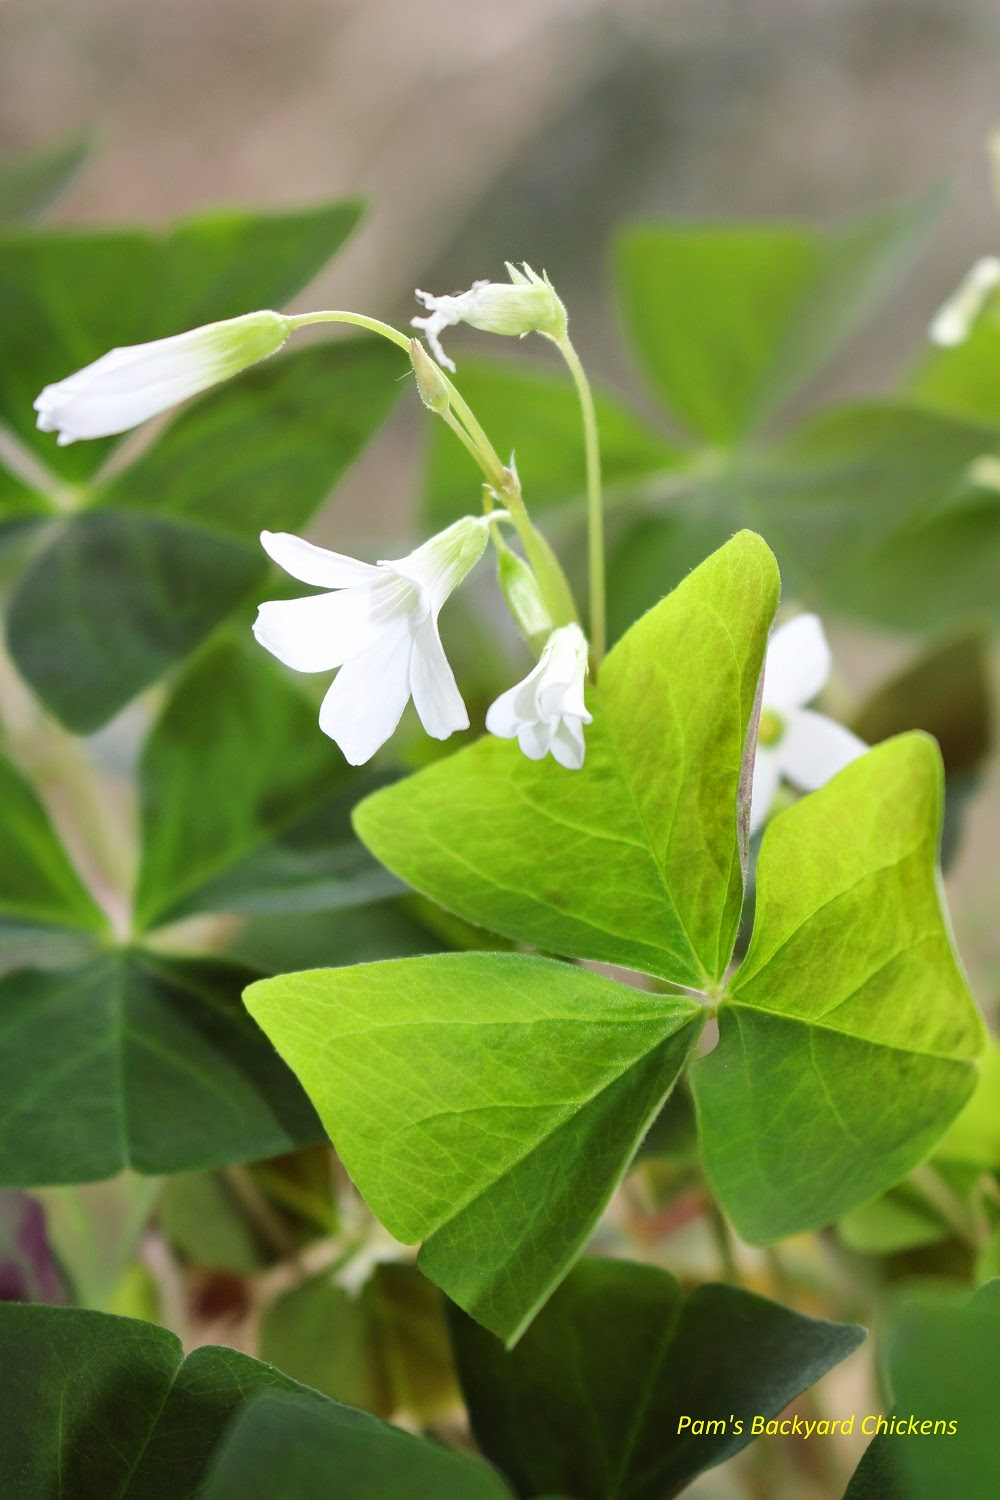 Pam's Backyard Chickens: How To Care For A Shamrock Plant